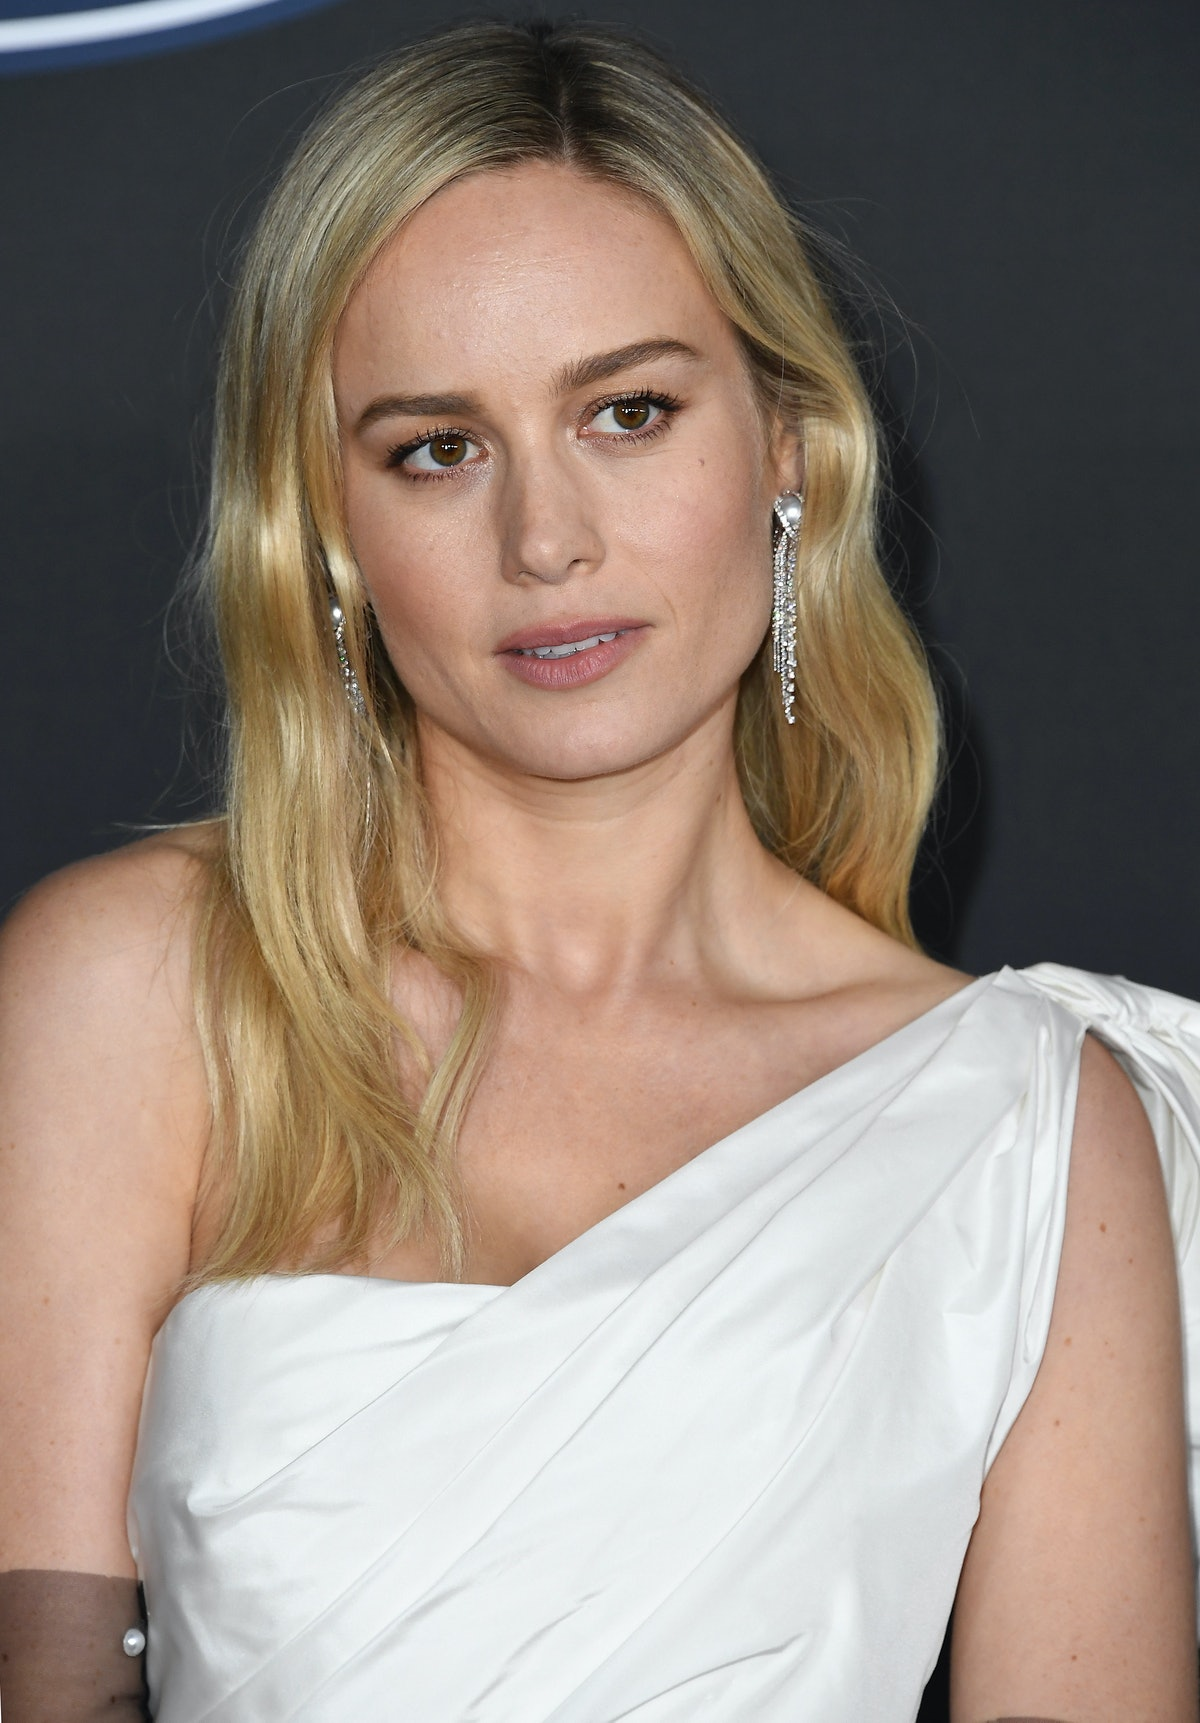 PASADENA, CALIFORNIA - FEBRUARY 22: Brie Larson arrives at the 51st NAACP Image Awards on February 2...